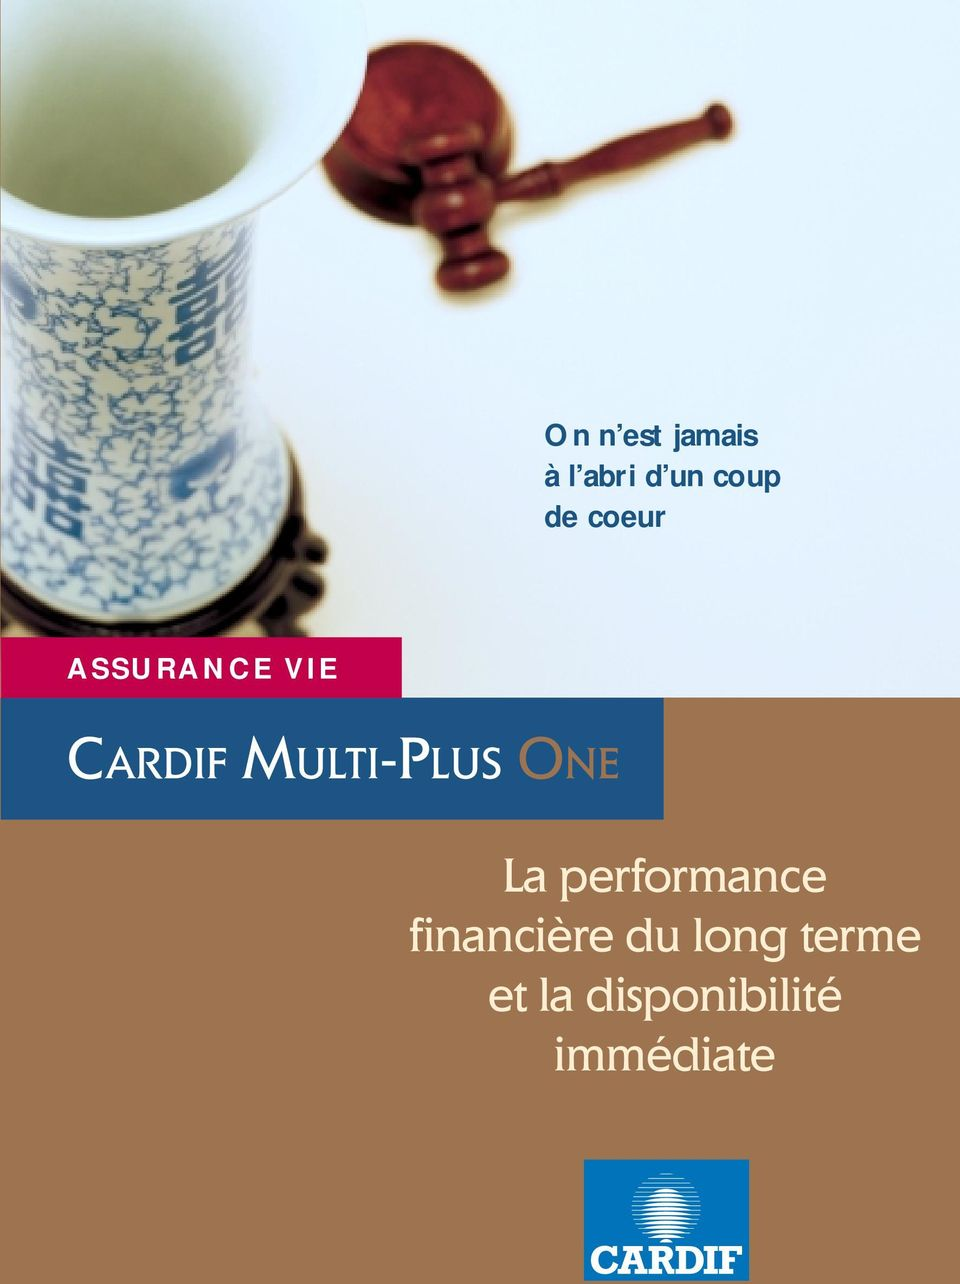 ONE La performance financière du long